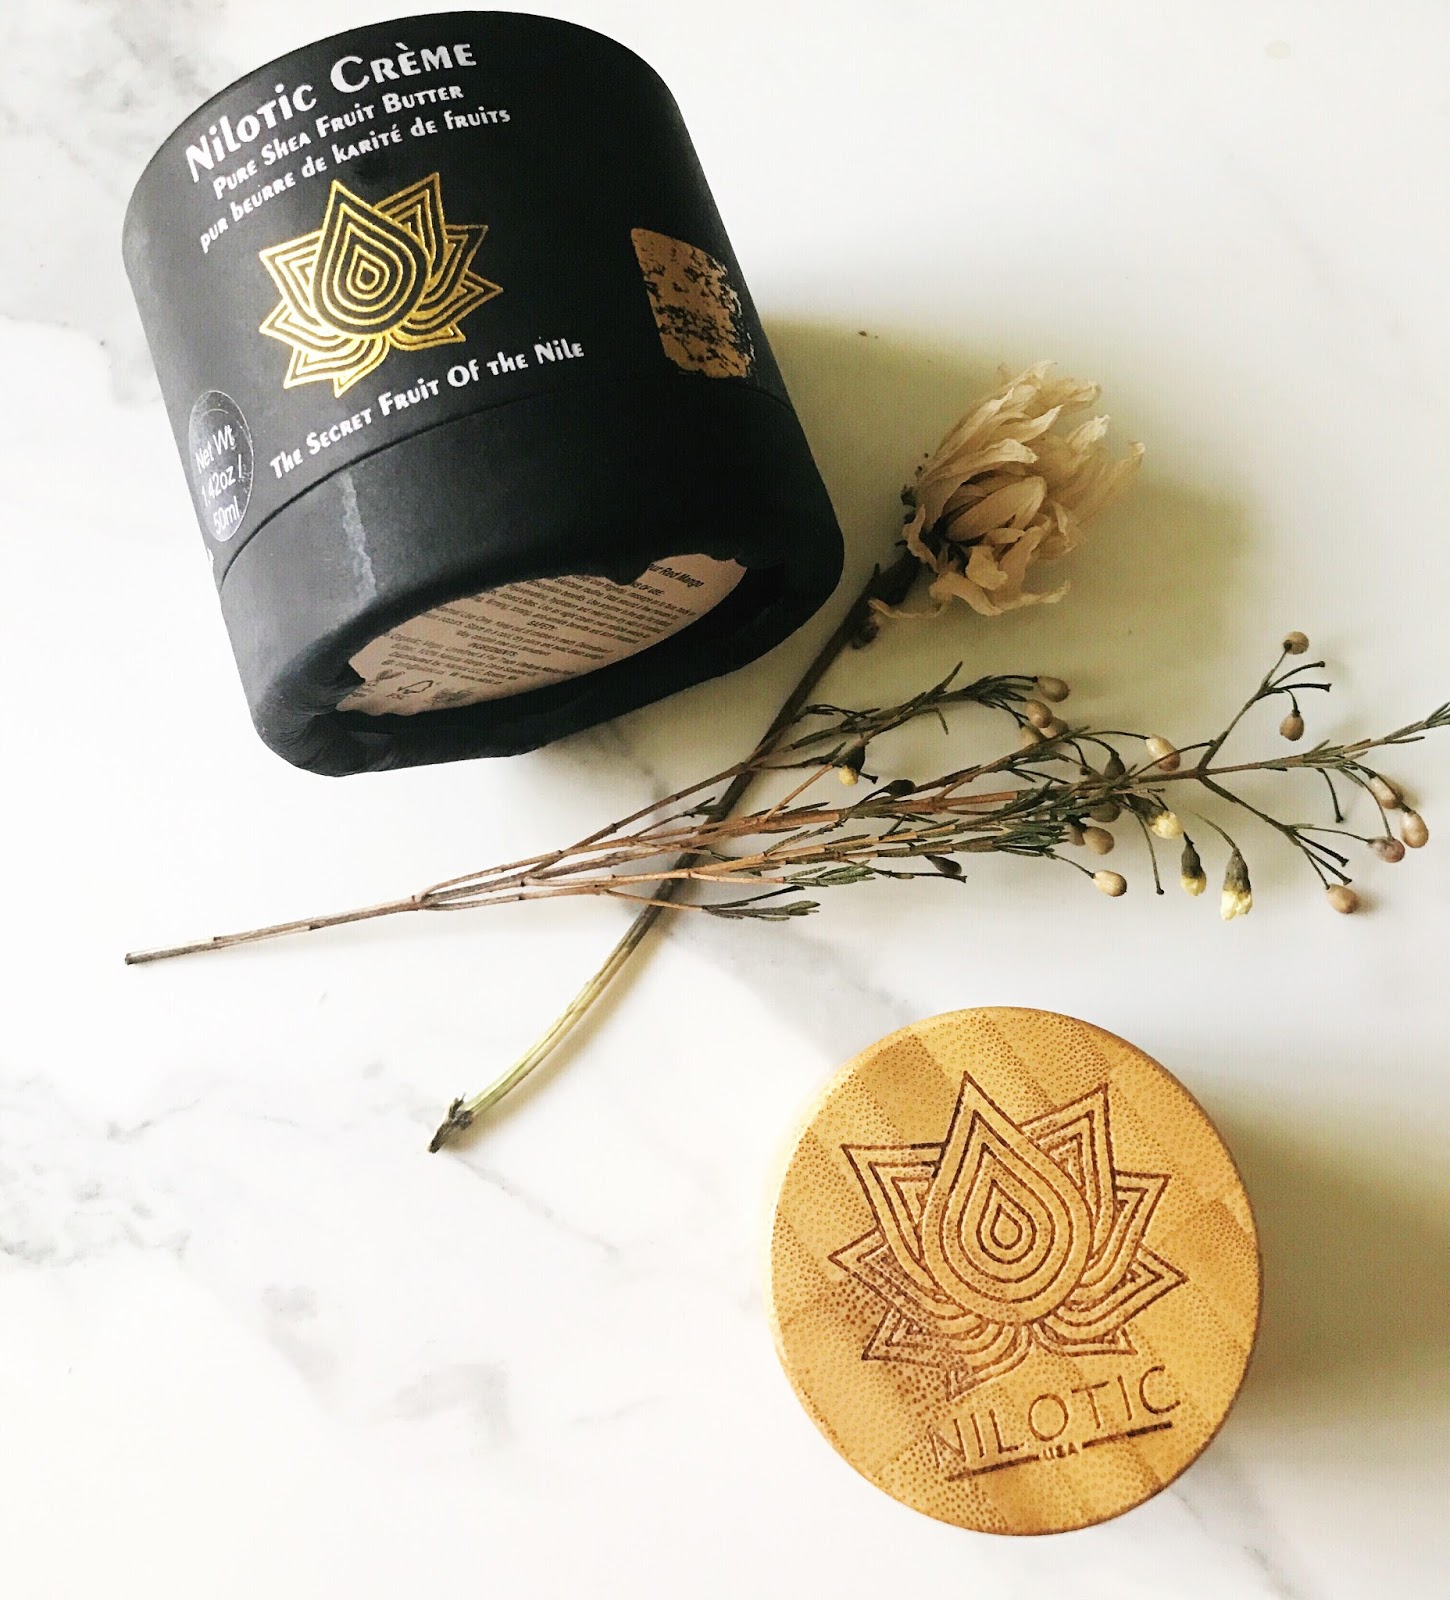 Nilotic body creme, vegan, skincare, luxury, good cause